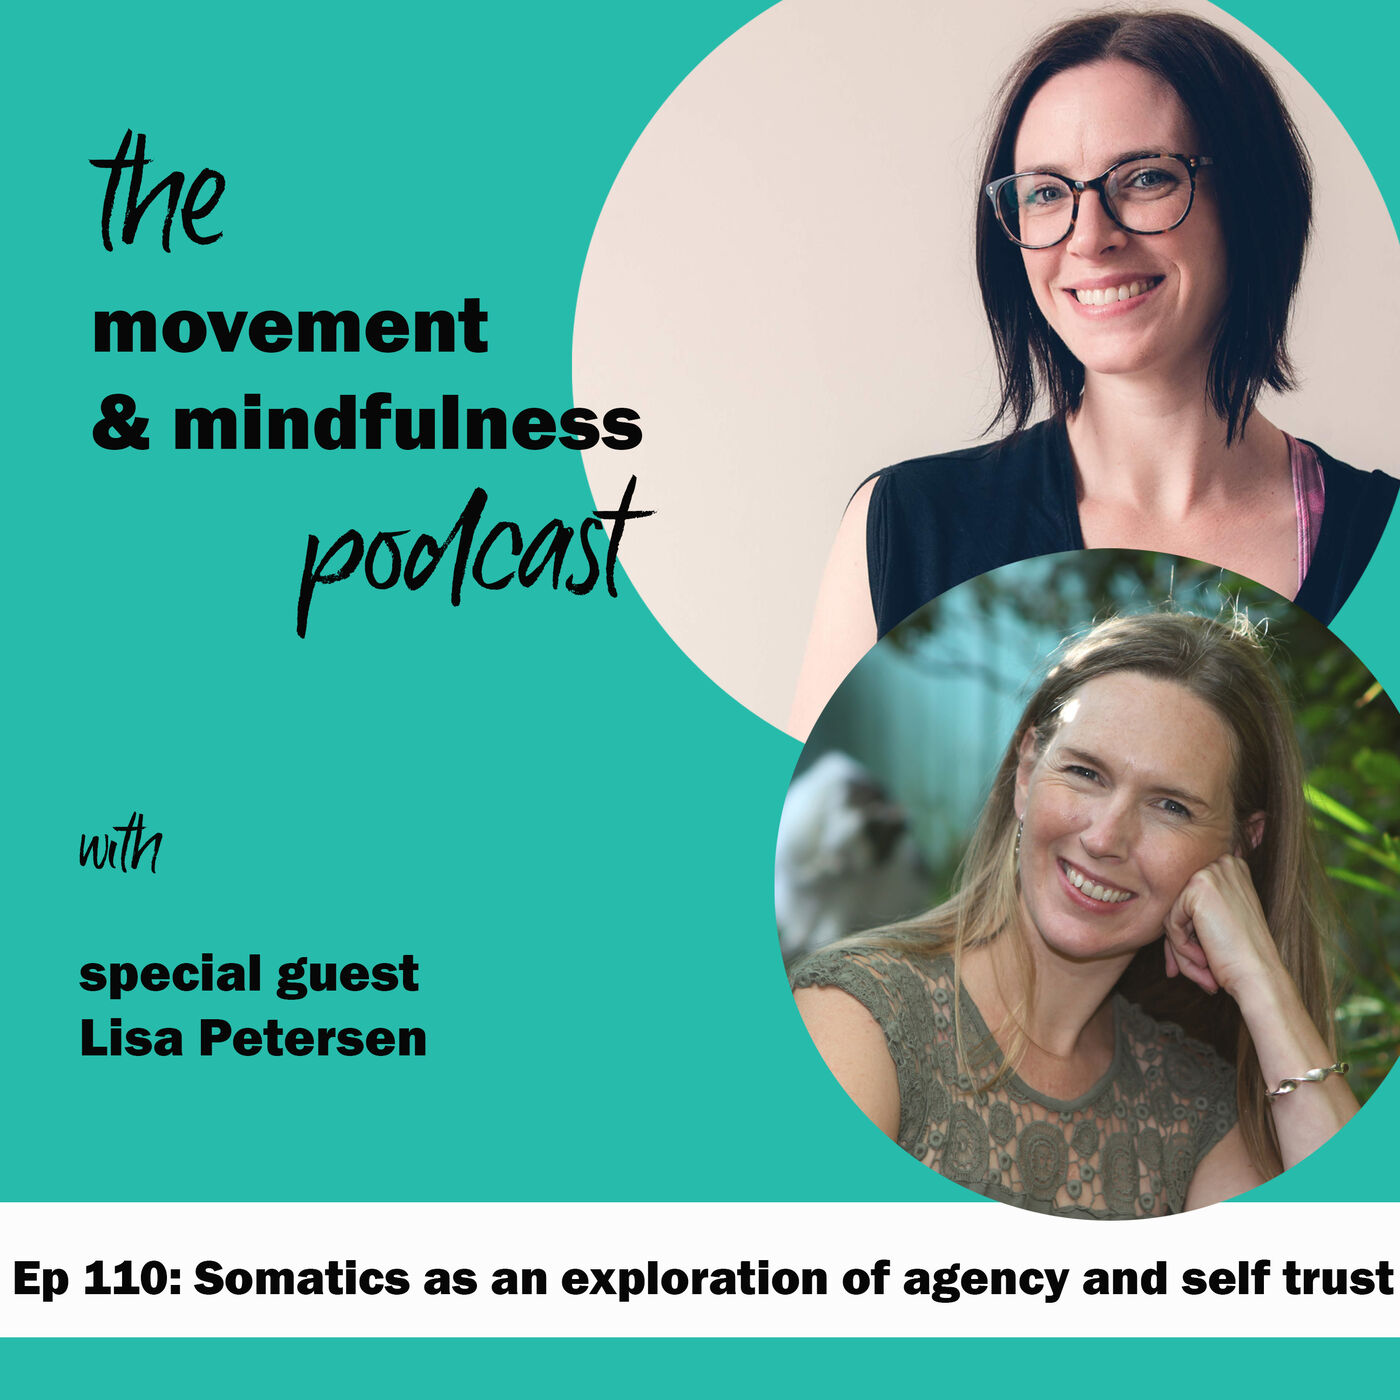 Ep 110: Somatics as an exploration of agency and self trust with Lisa Petersen